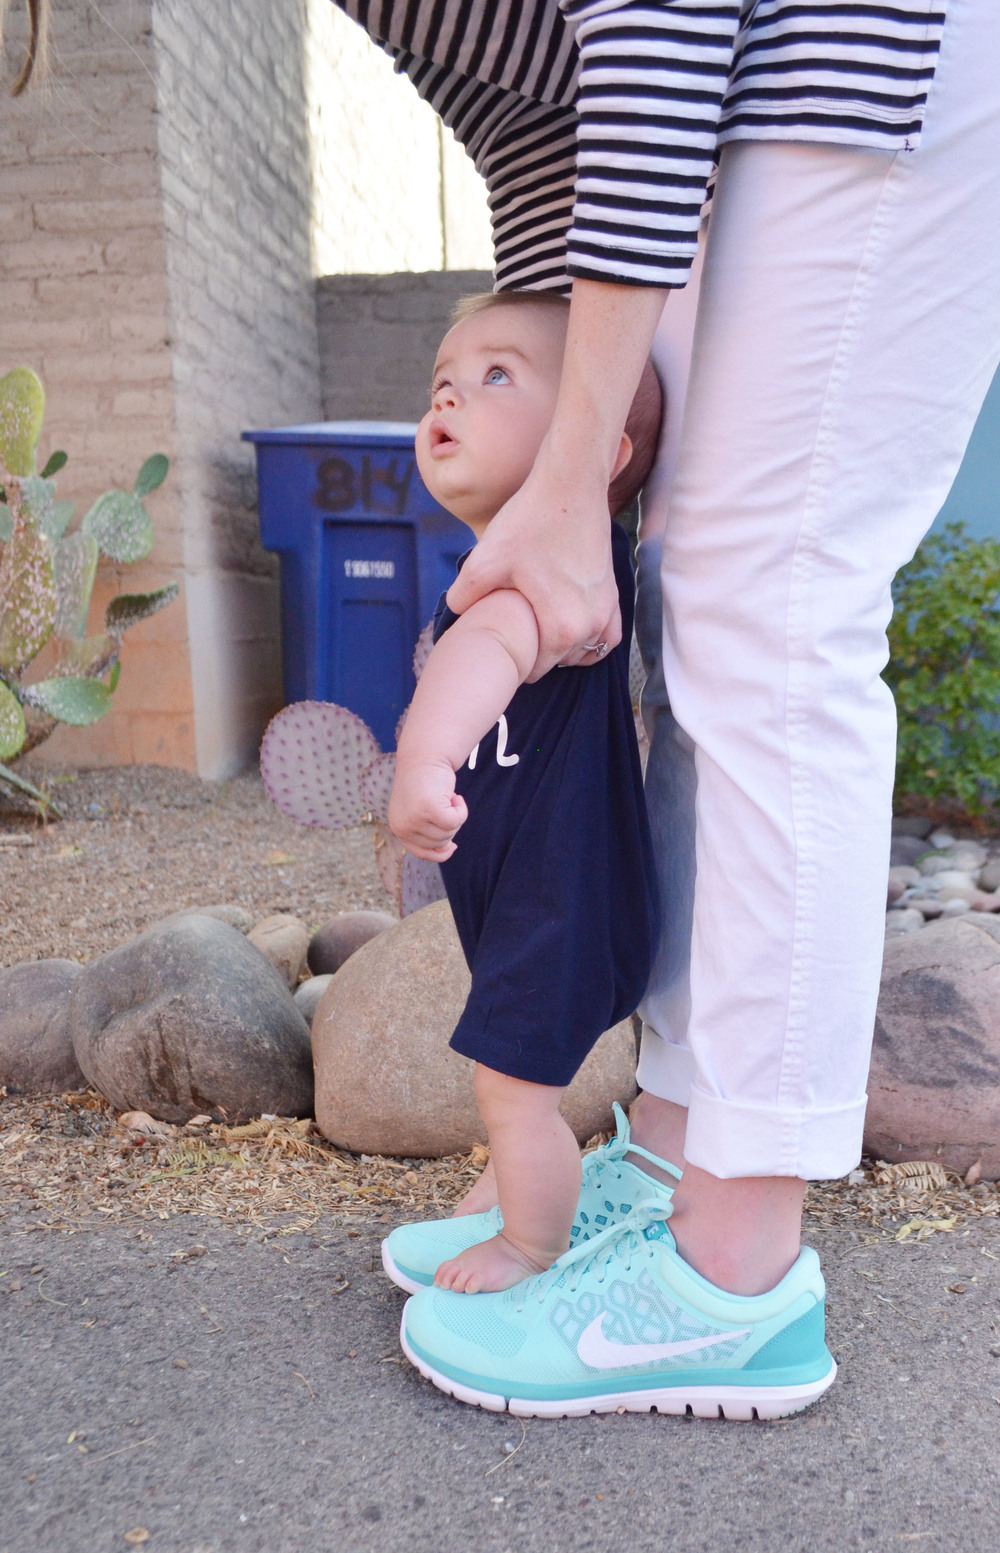 Tucson's Barrios Viejo Family Guide | Momma Society-The Community of Modern Moms | Follow us on Instagram @mommasociety